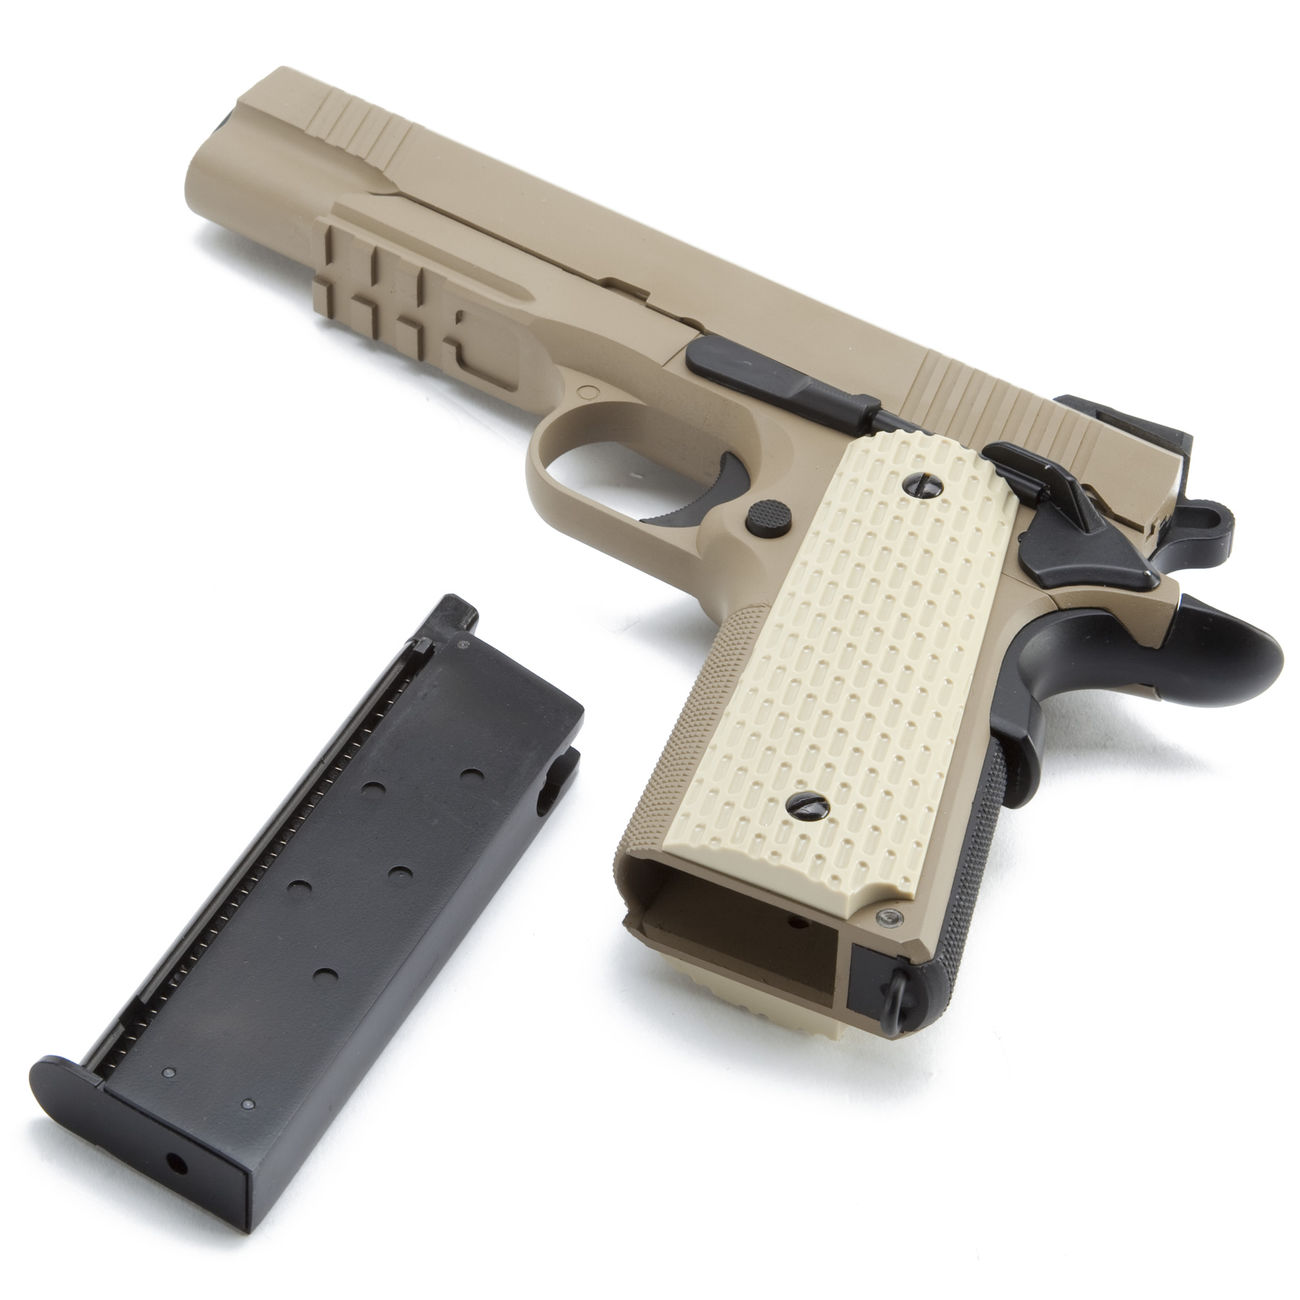 Wei-ETech Kbr-Style Warrior .45 ACP Vollmetall GBB 6mm BB Desert Tan 4